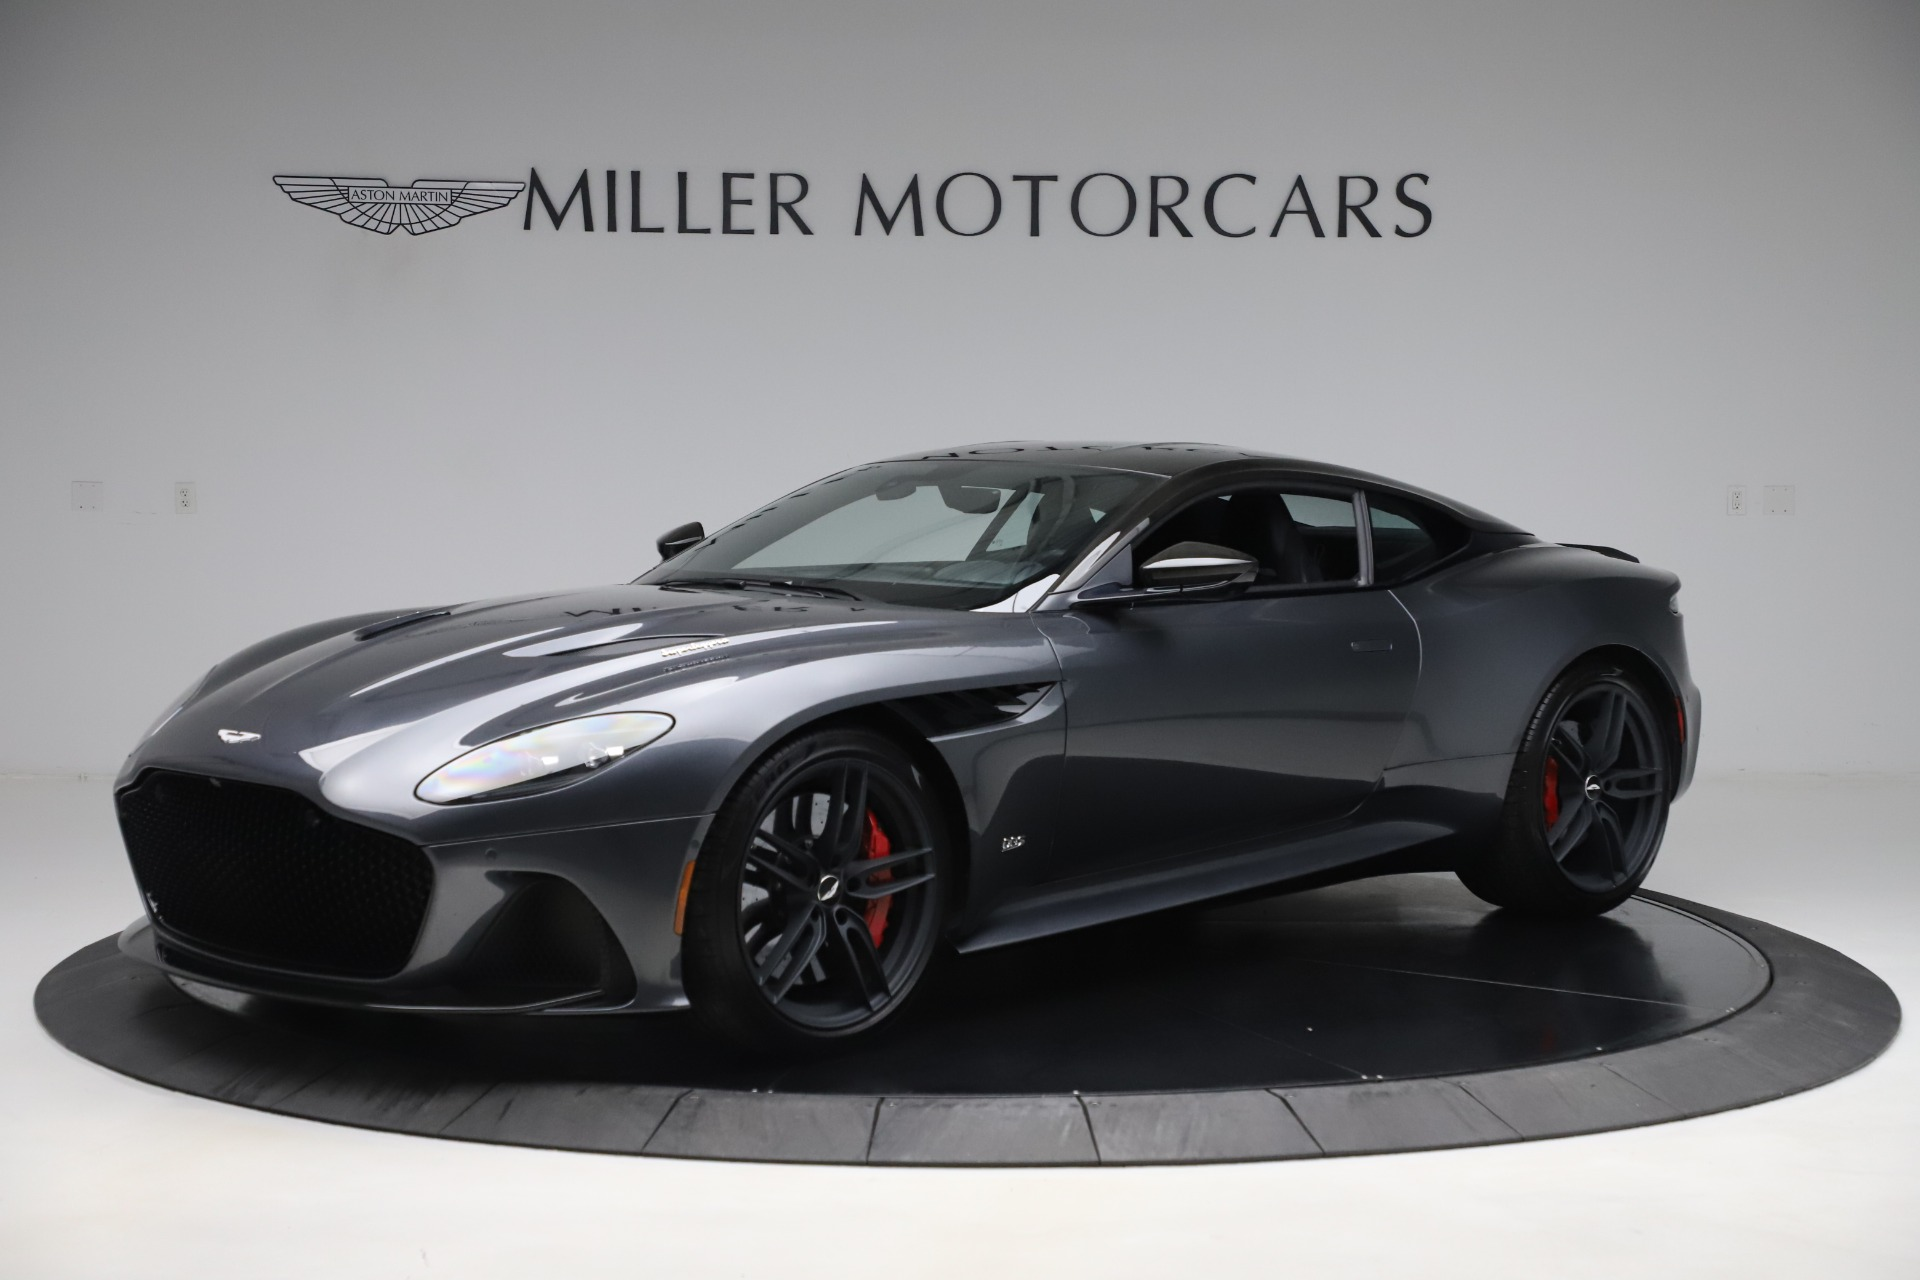 Used 2019 Aston Martin DBS Superleggera Coupe for sale $269,900 at Rolls-Royce Motor Cars Greenwich in Greenwich CT 06830 1